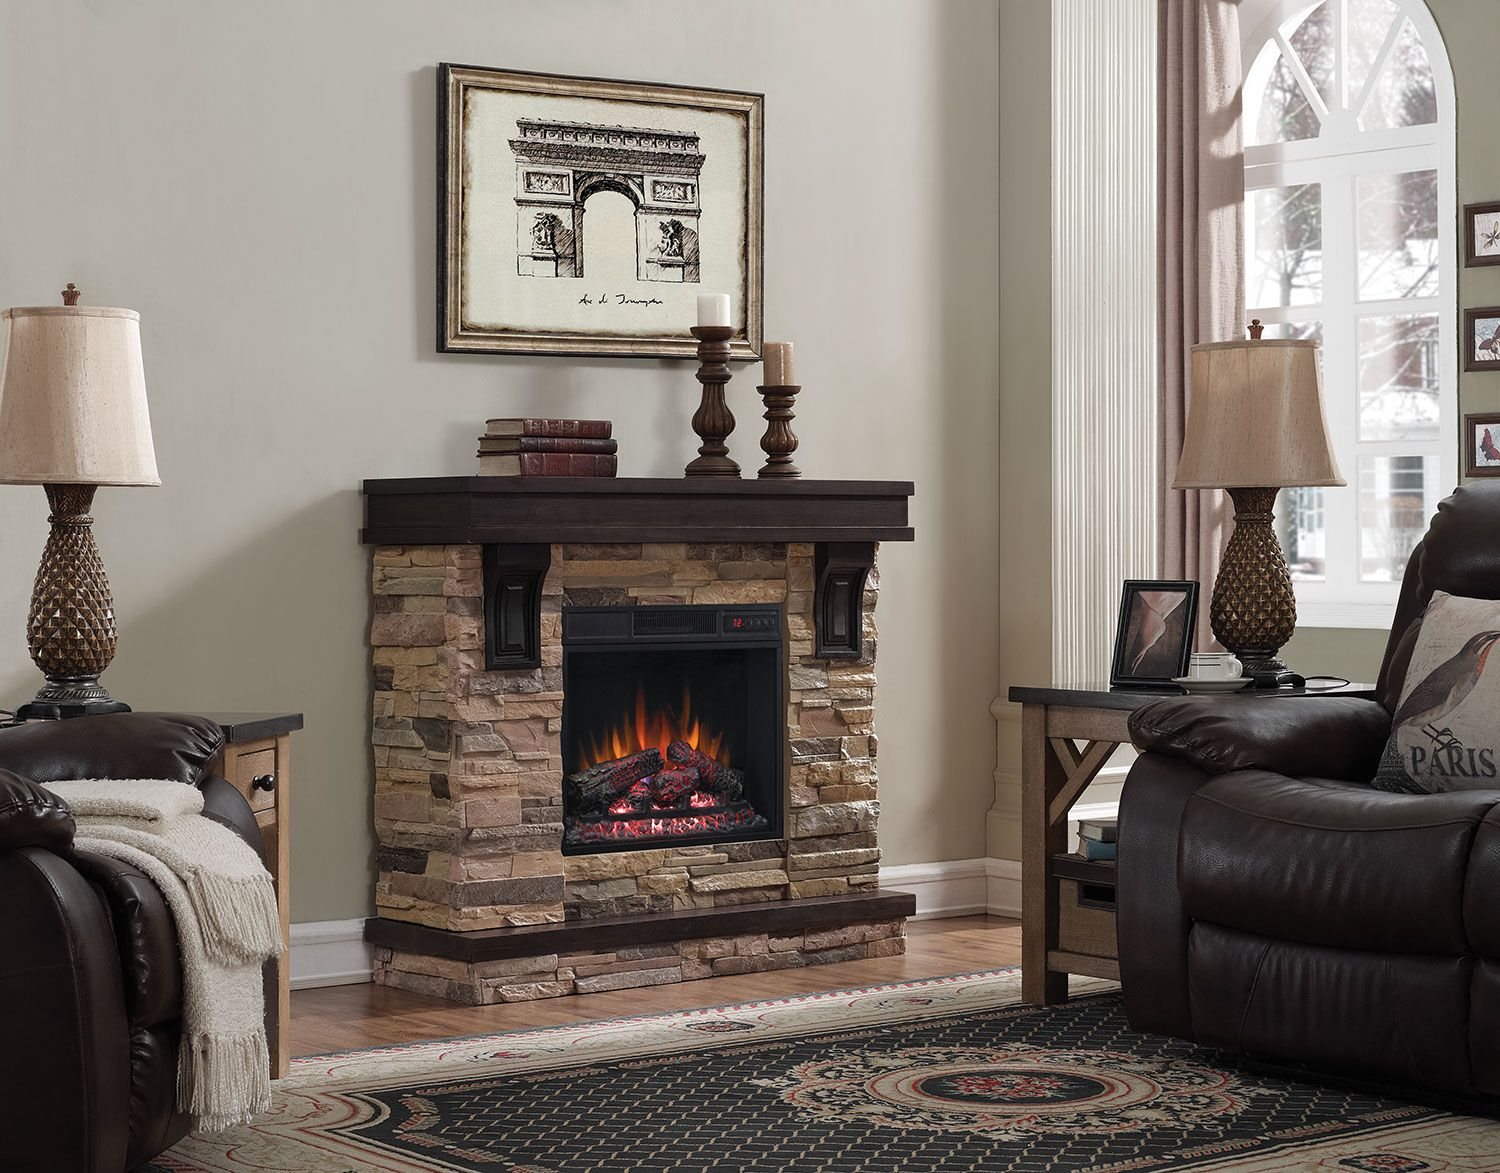 Tv television stands austin s furniture - Austin 45 Tv Stand With Log Firebox